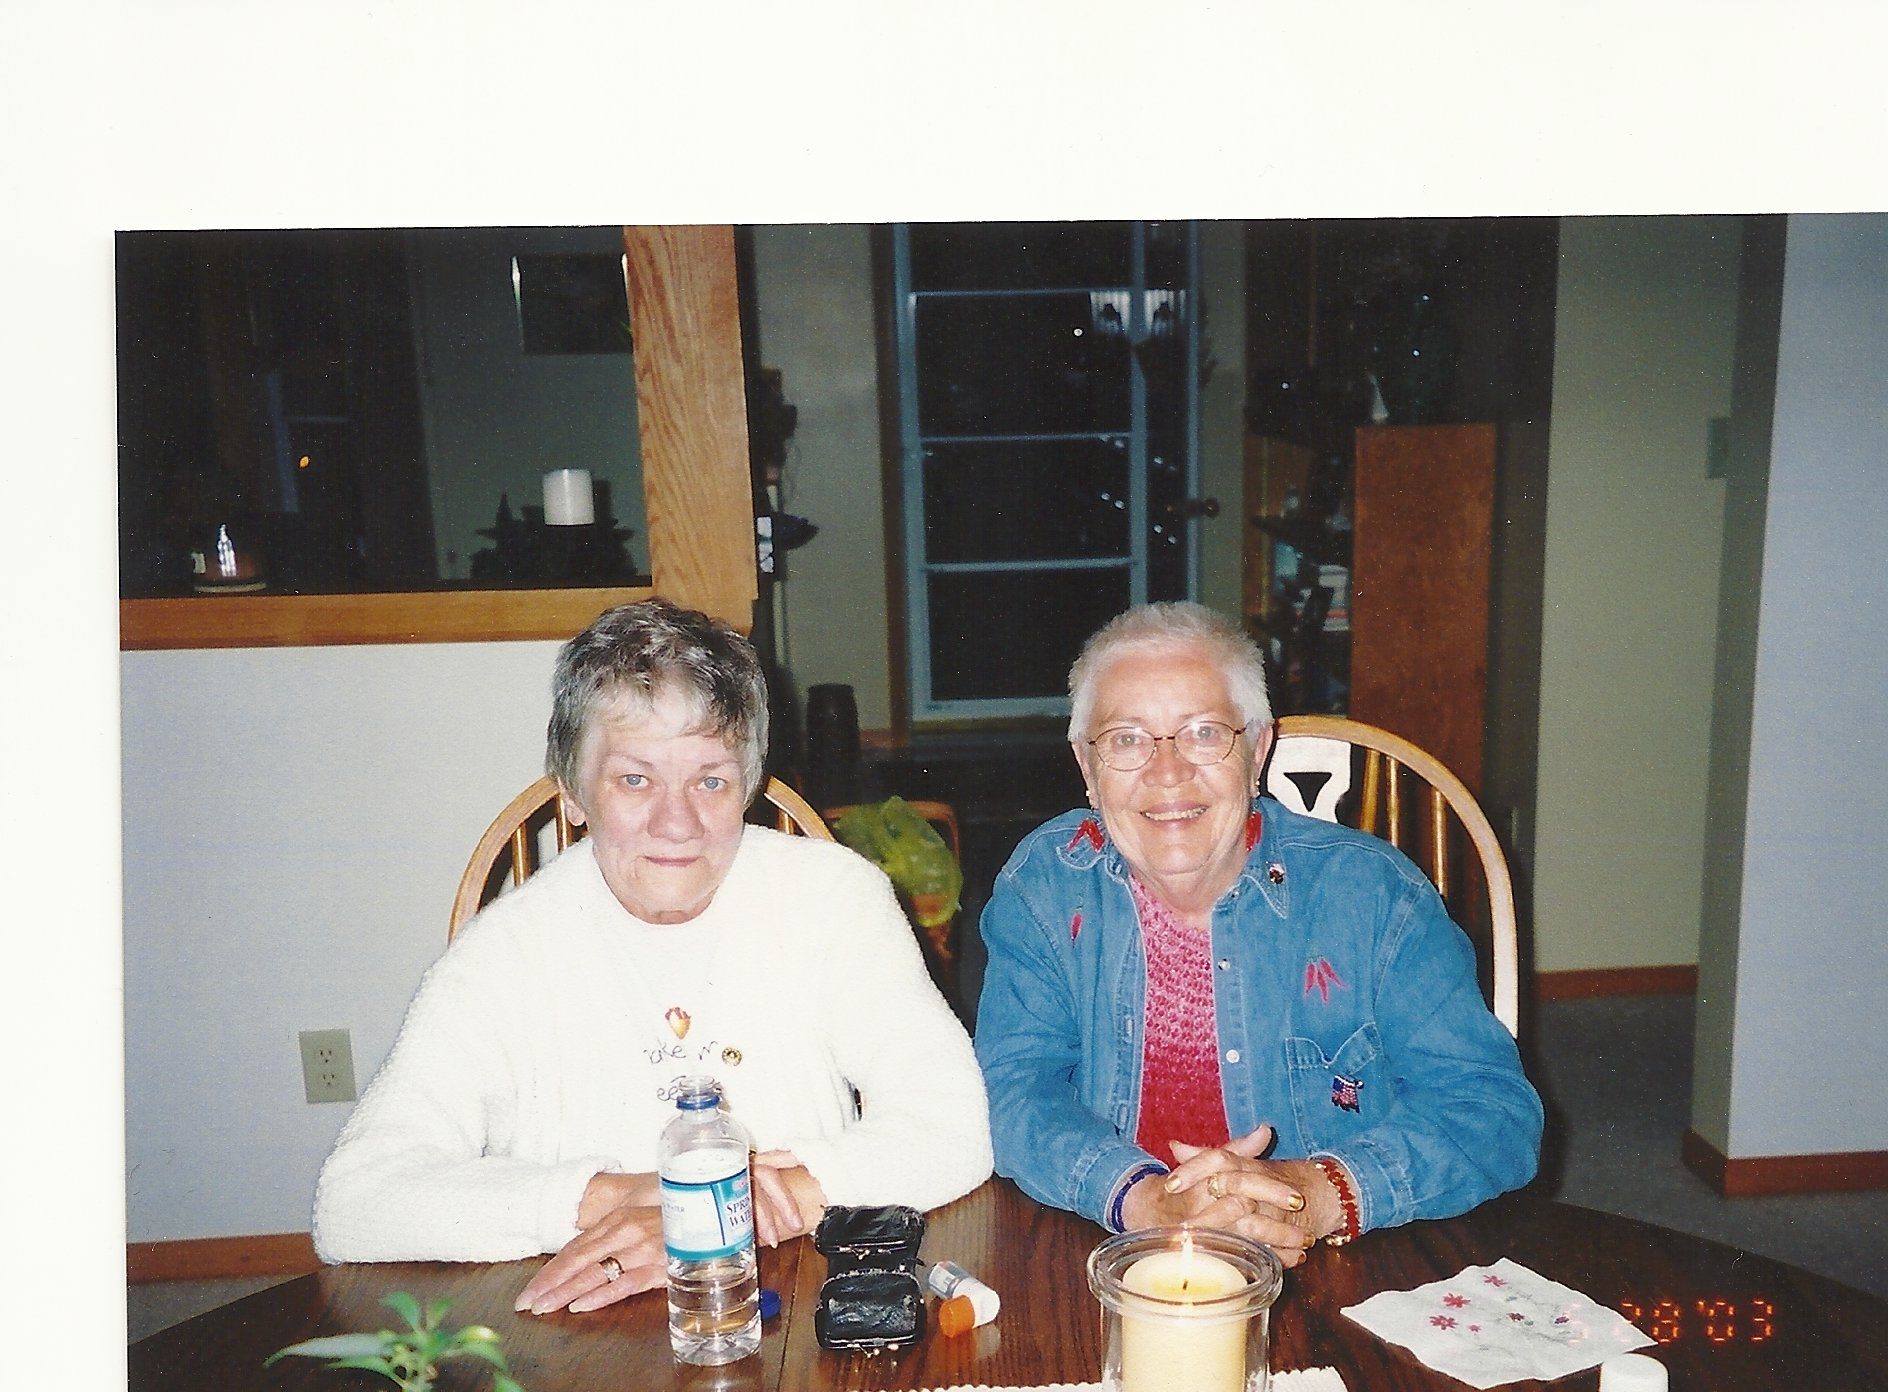 Obituary for Carol Ann Meeds Ellett album